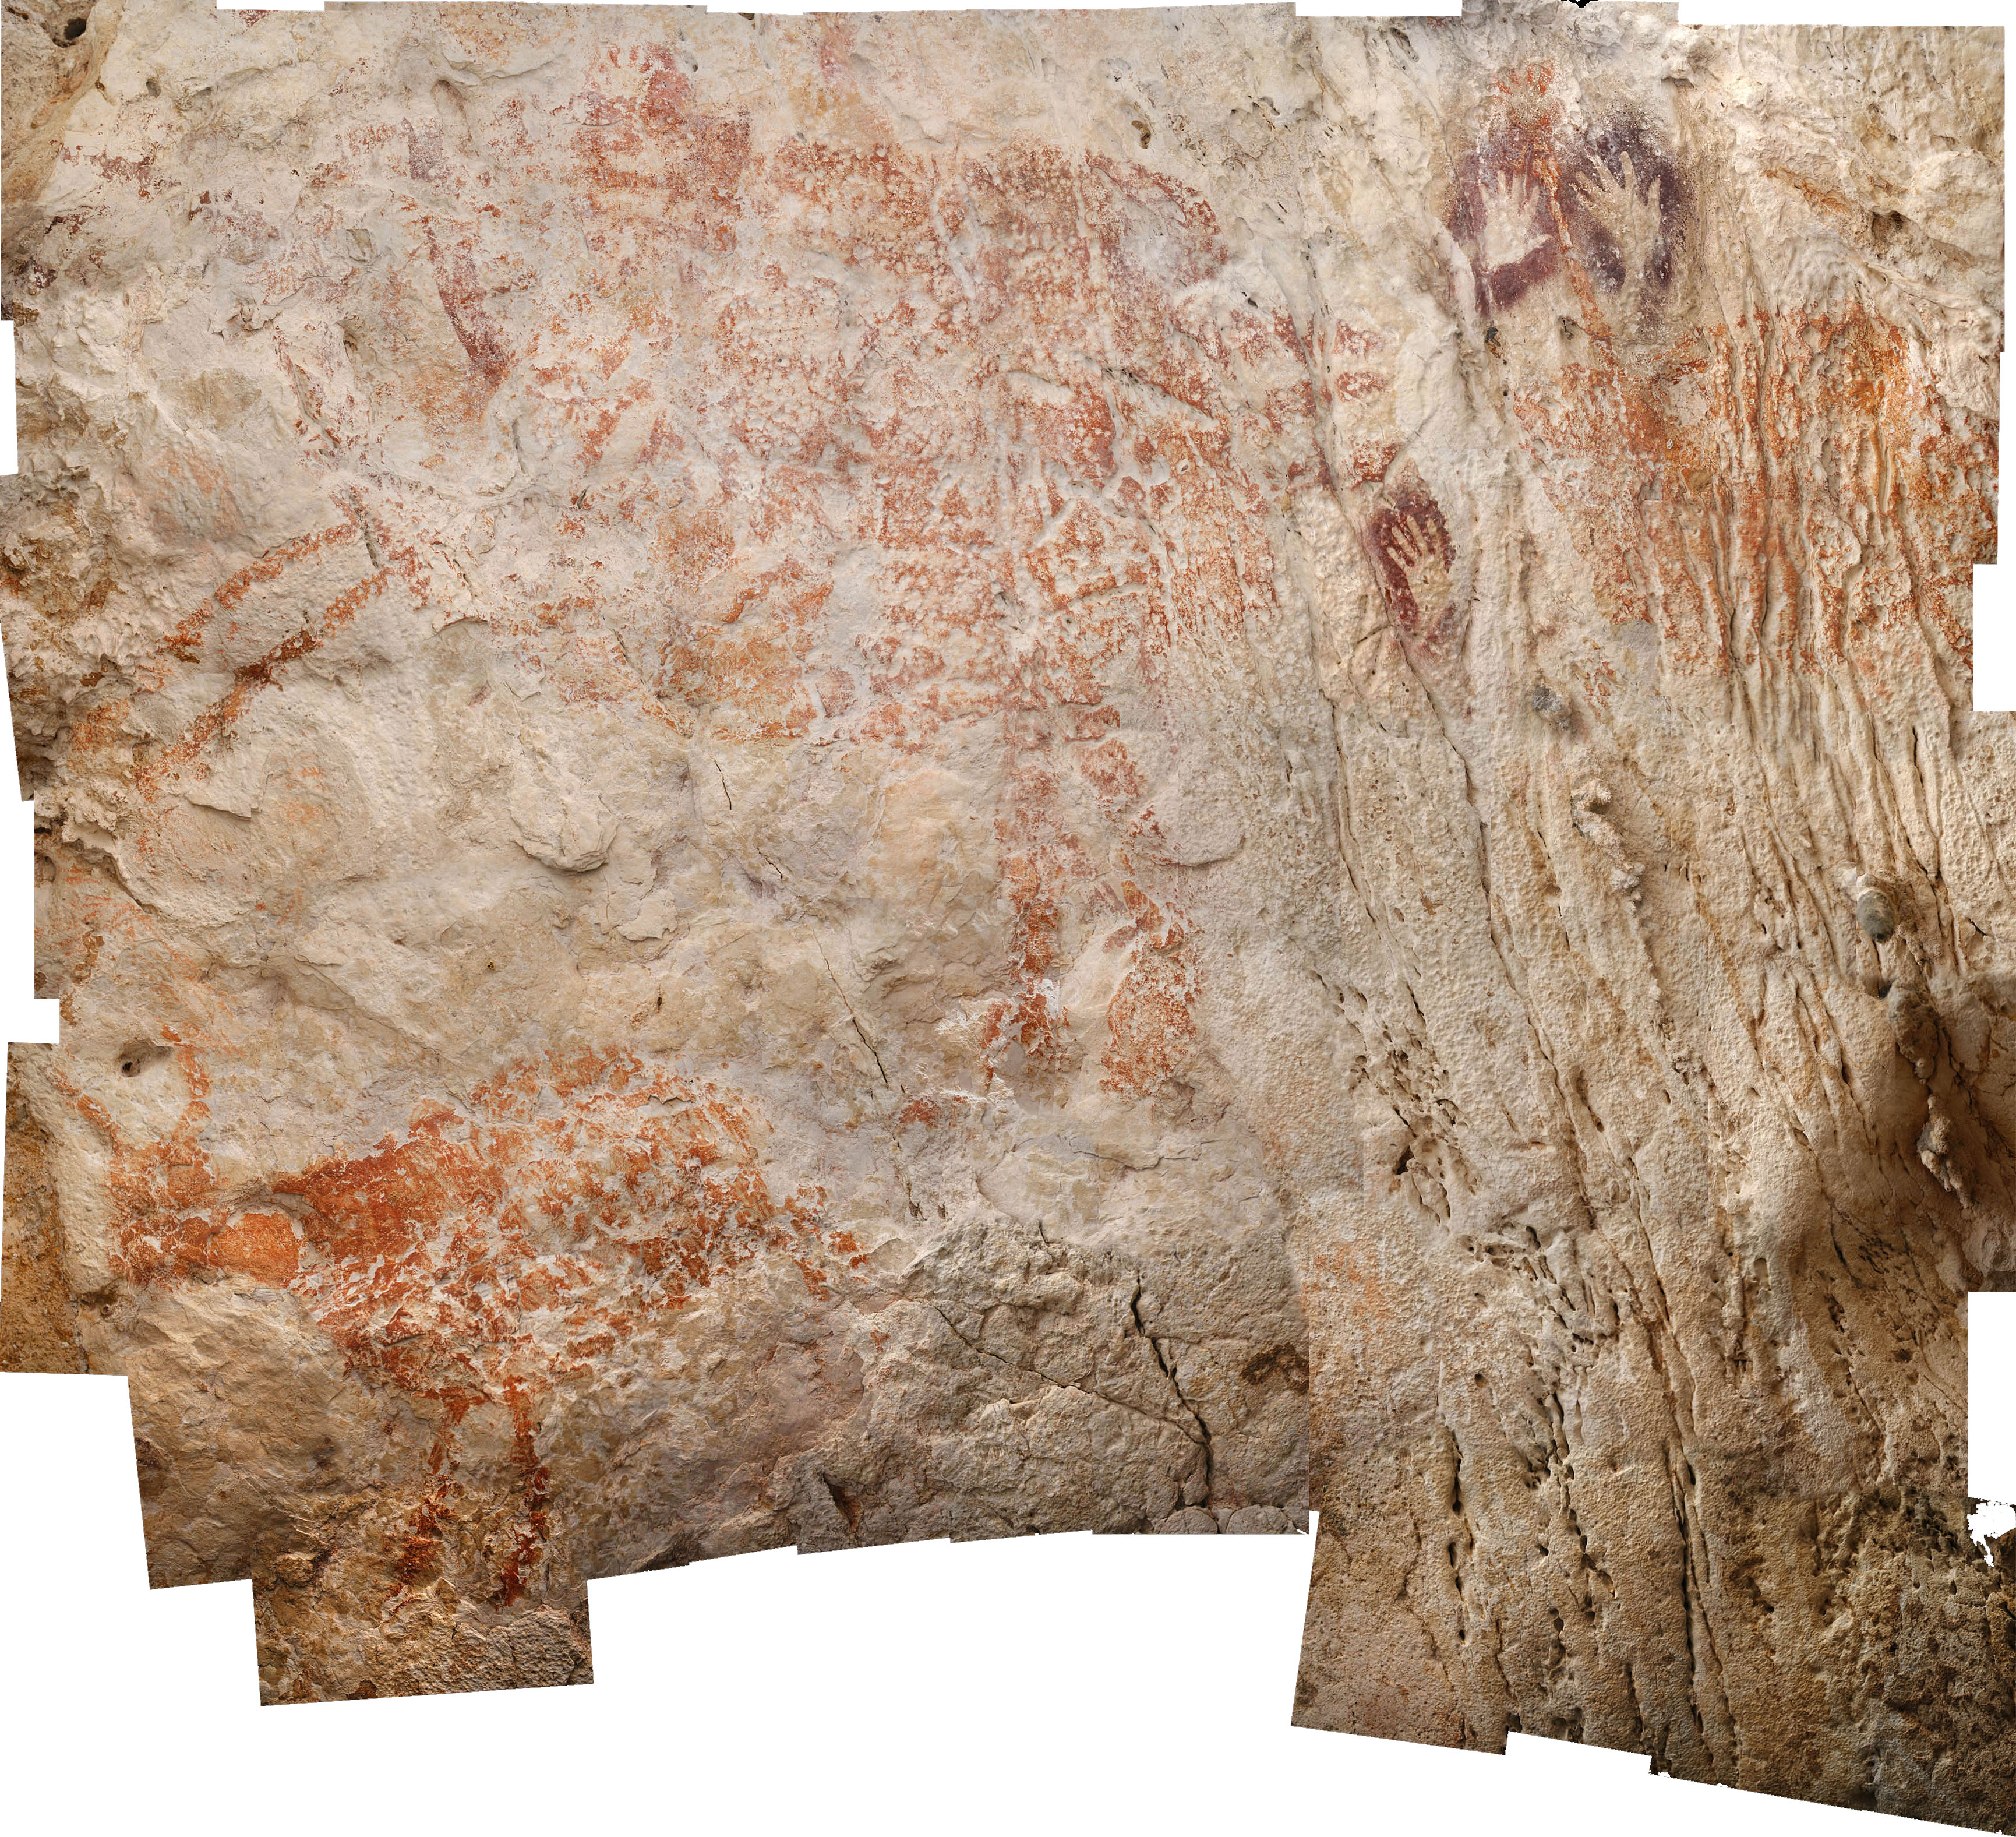 The world's oldest figurative artwork from Borneo dated to a minimum of 40,000 years | Luc-Henri Fage